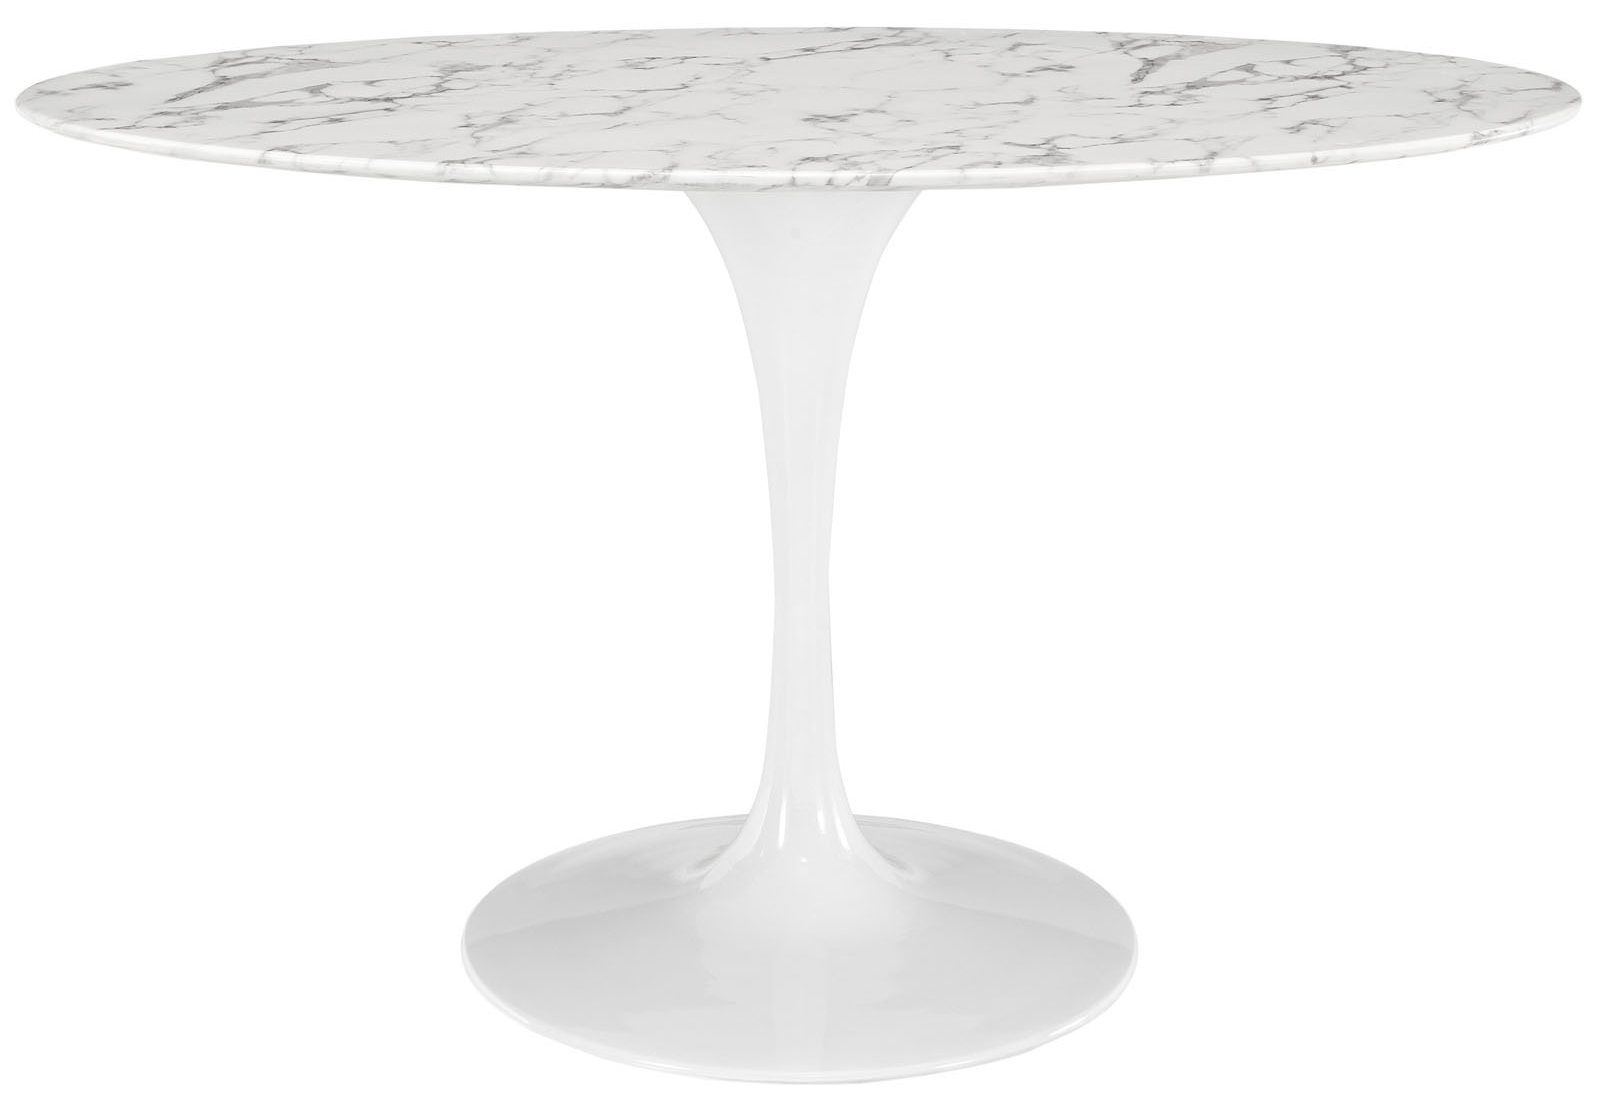 Anabel 54in Artificial Marbe Oval Dining Table1